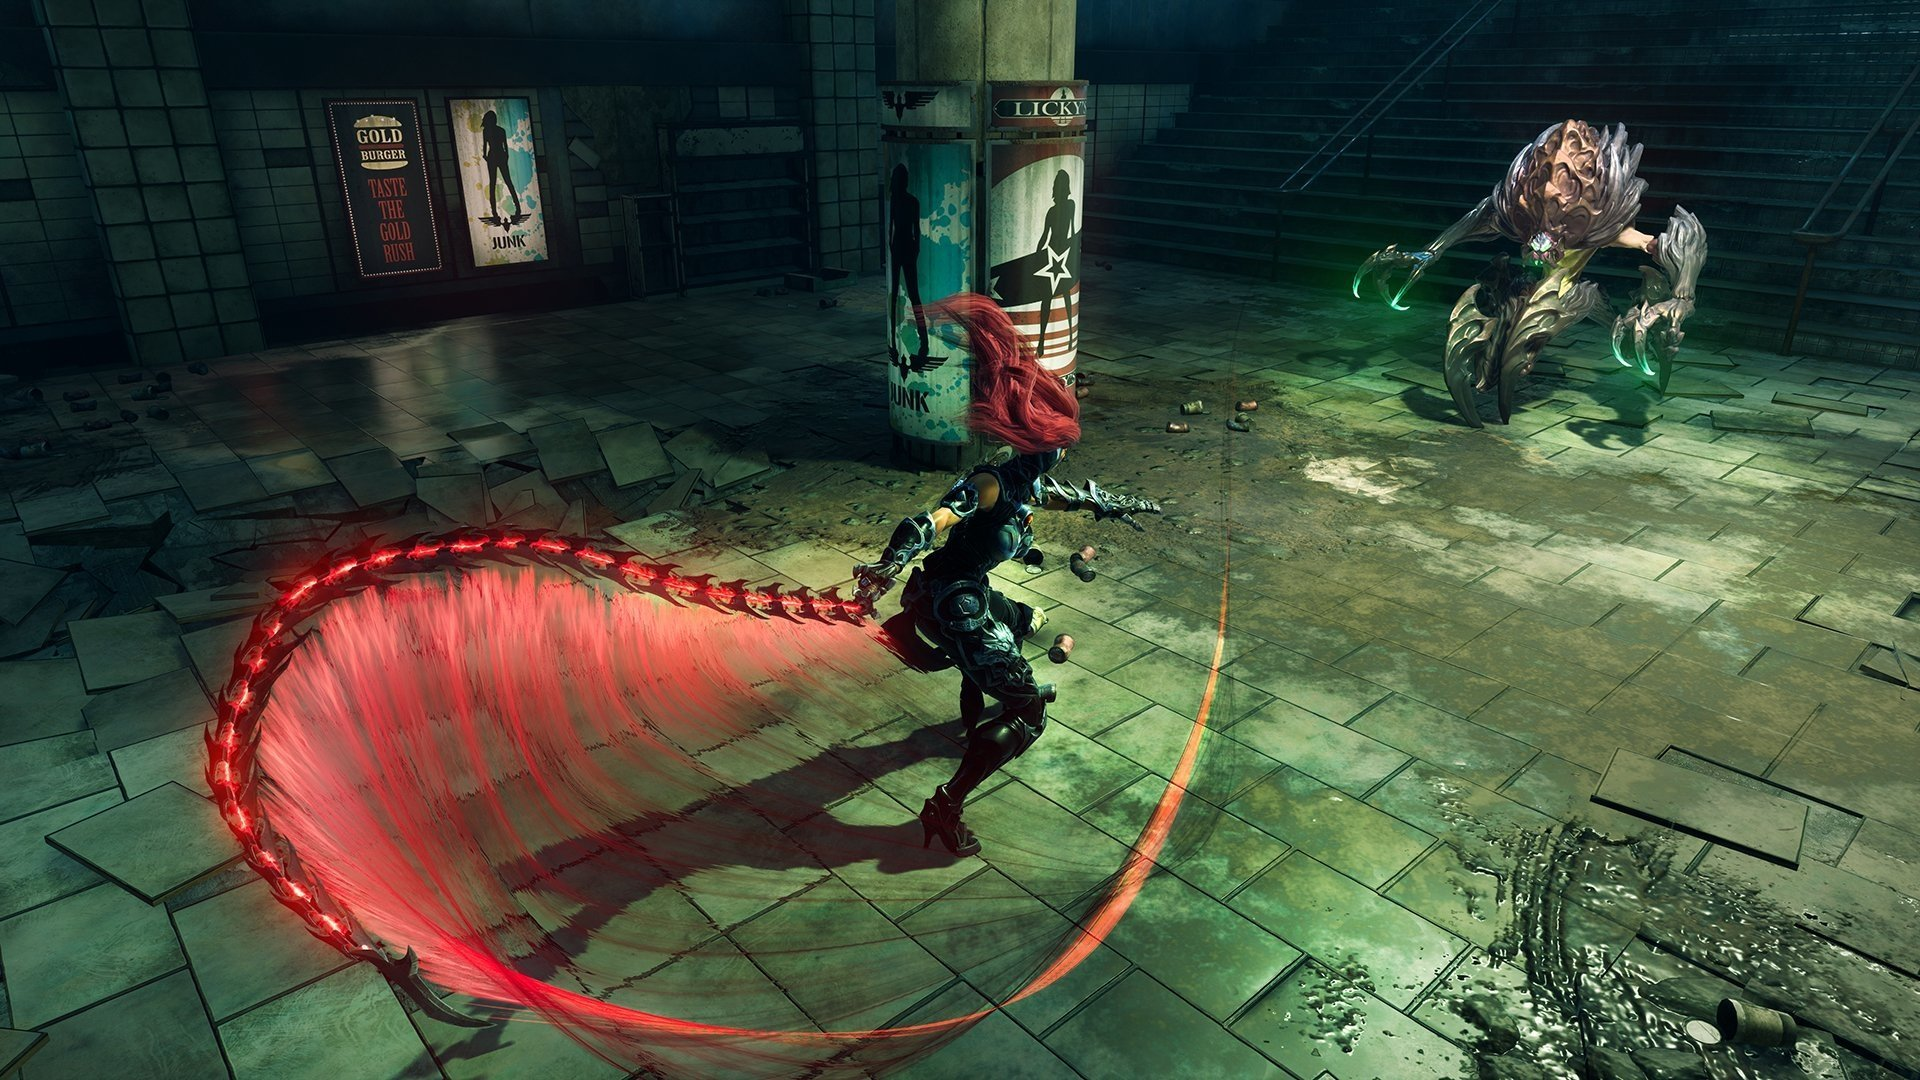 How to upgrade weapons and enchantments in Darksiders 3